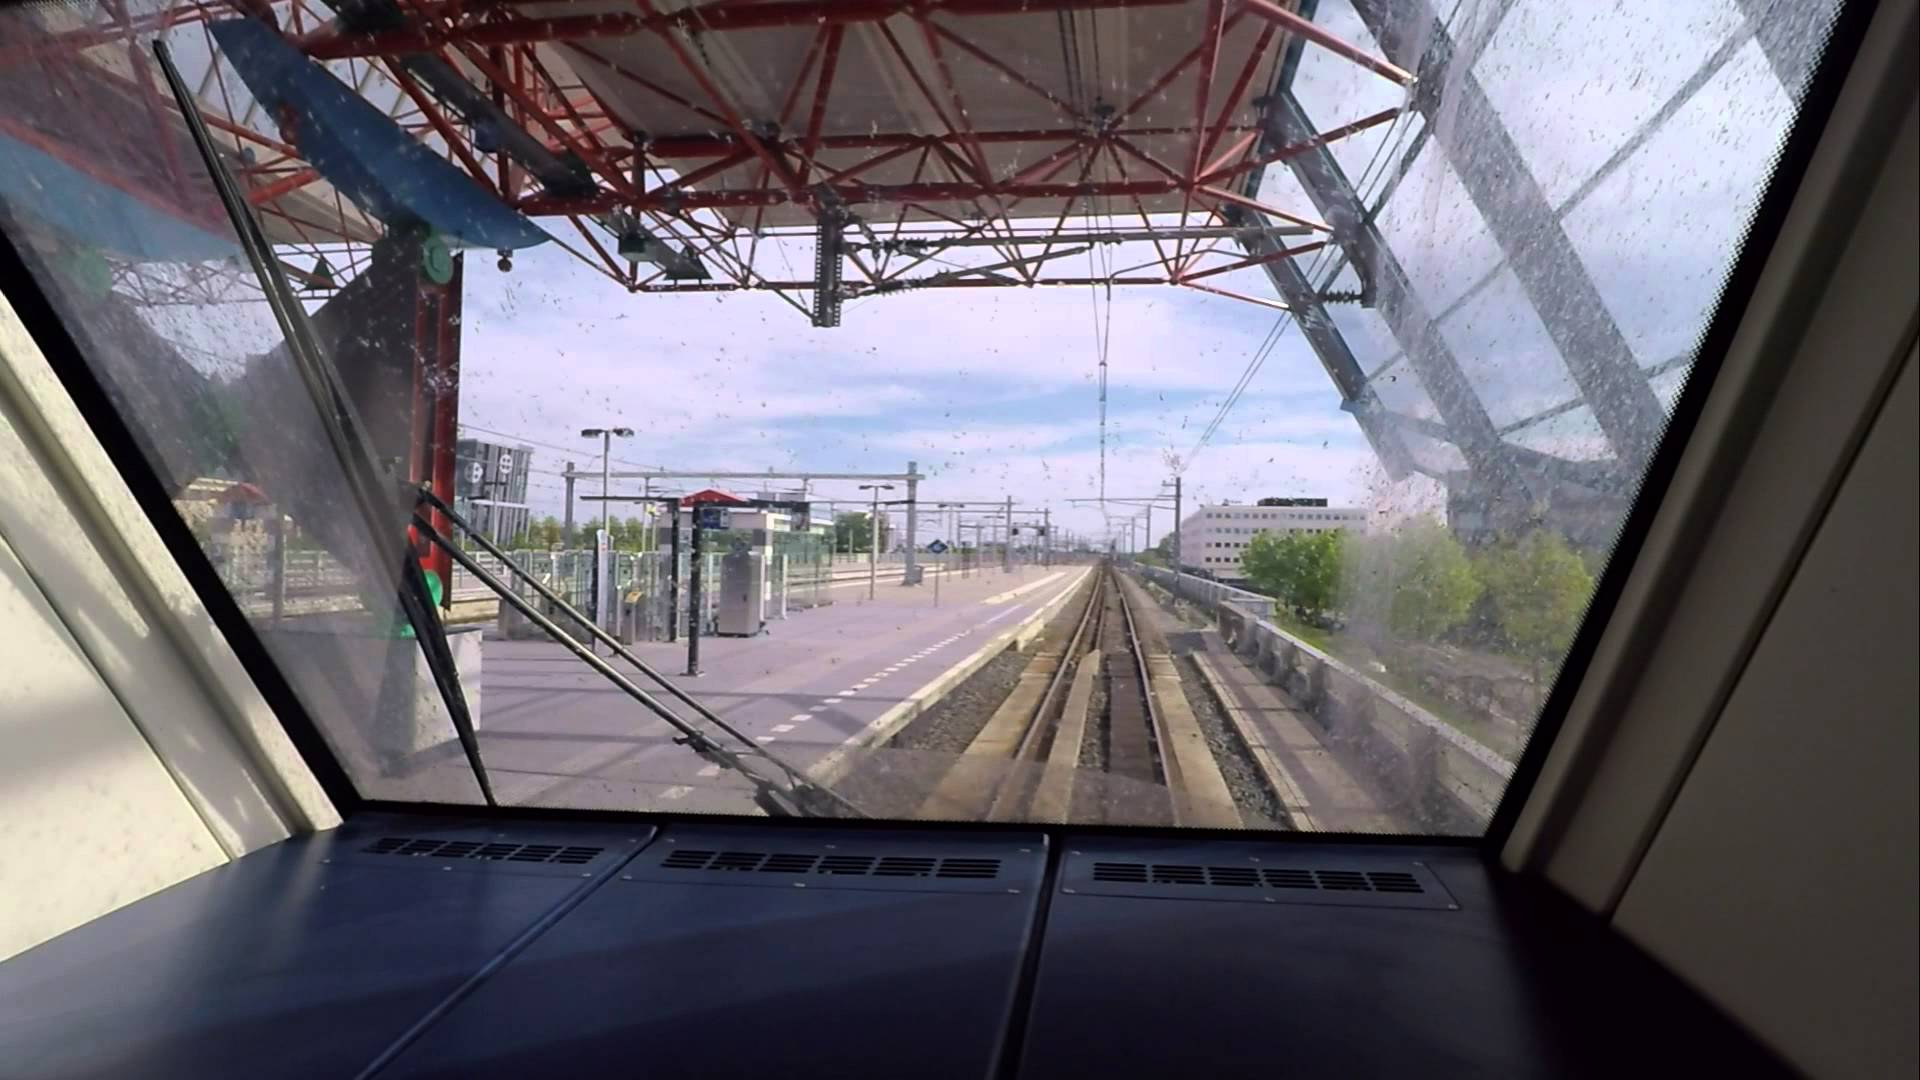 [cabinerit] A train driver's view: Kampen Zuid – Almere Buiten, SLT, 14-May-2015.